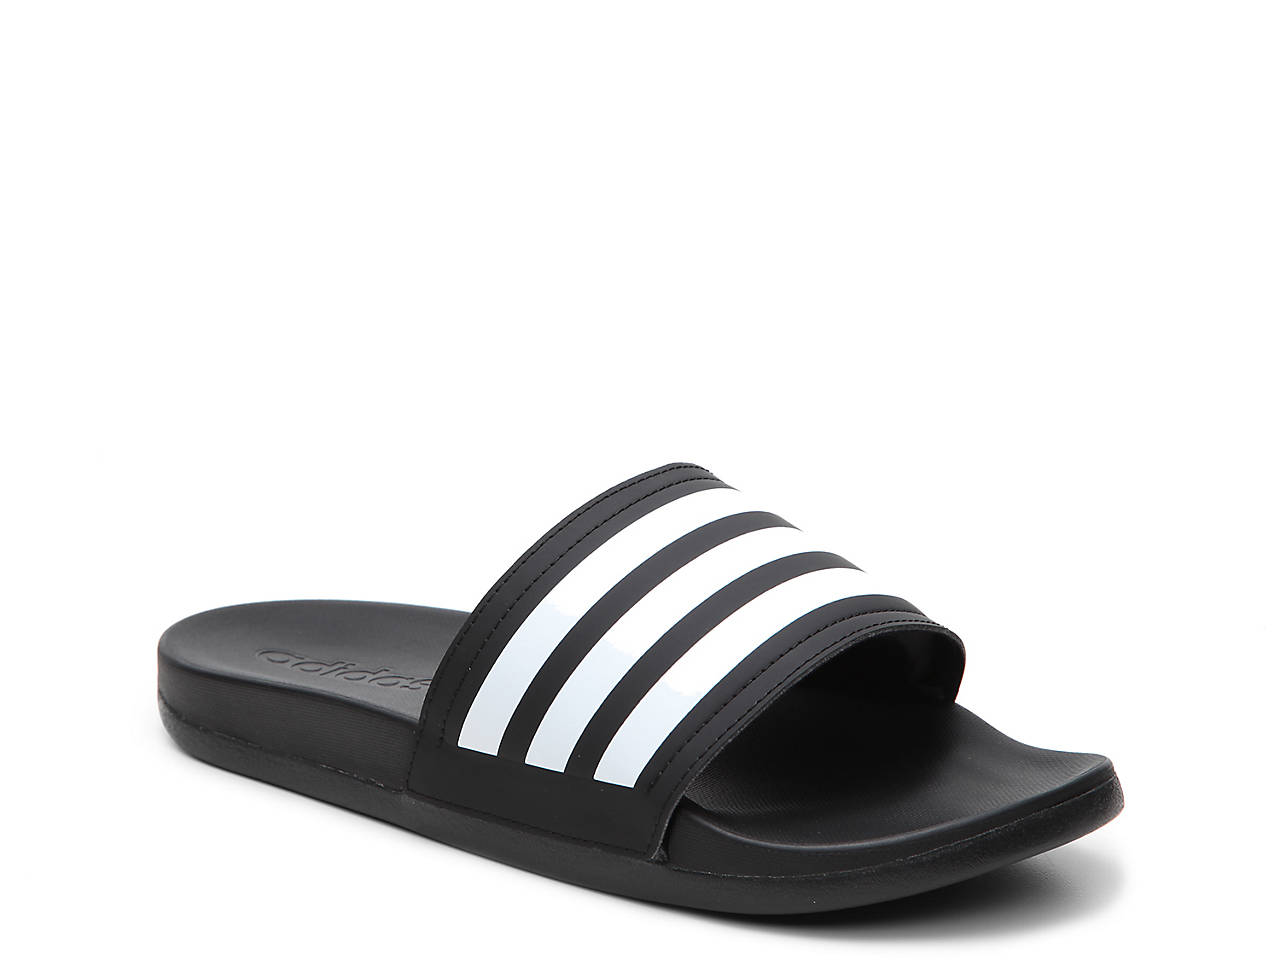 9ded72618b adidas Adilette Cloudfoam Ultra Stripes Slide Sandal - Women s ...